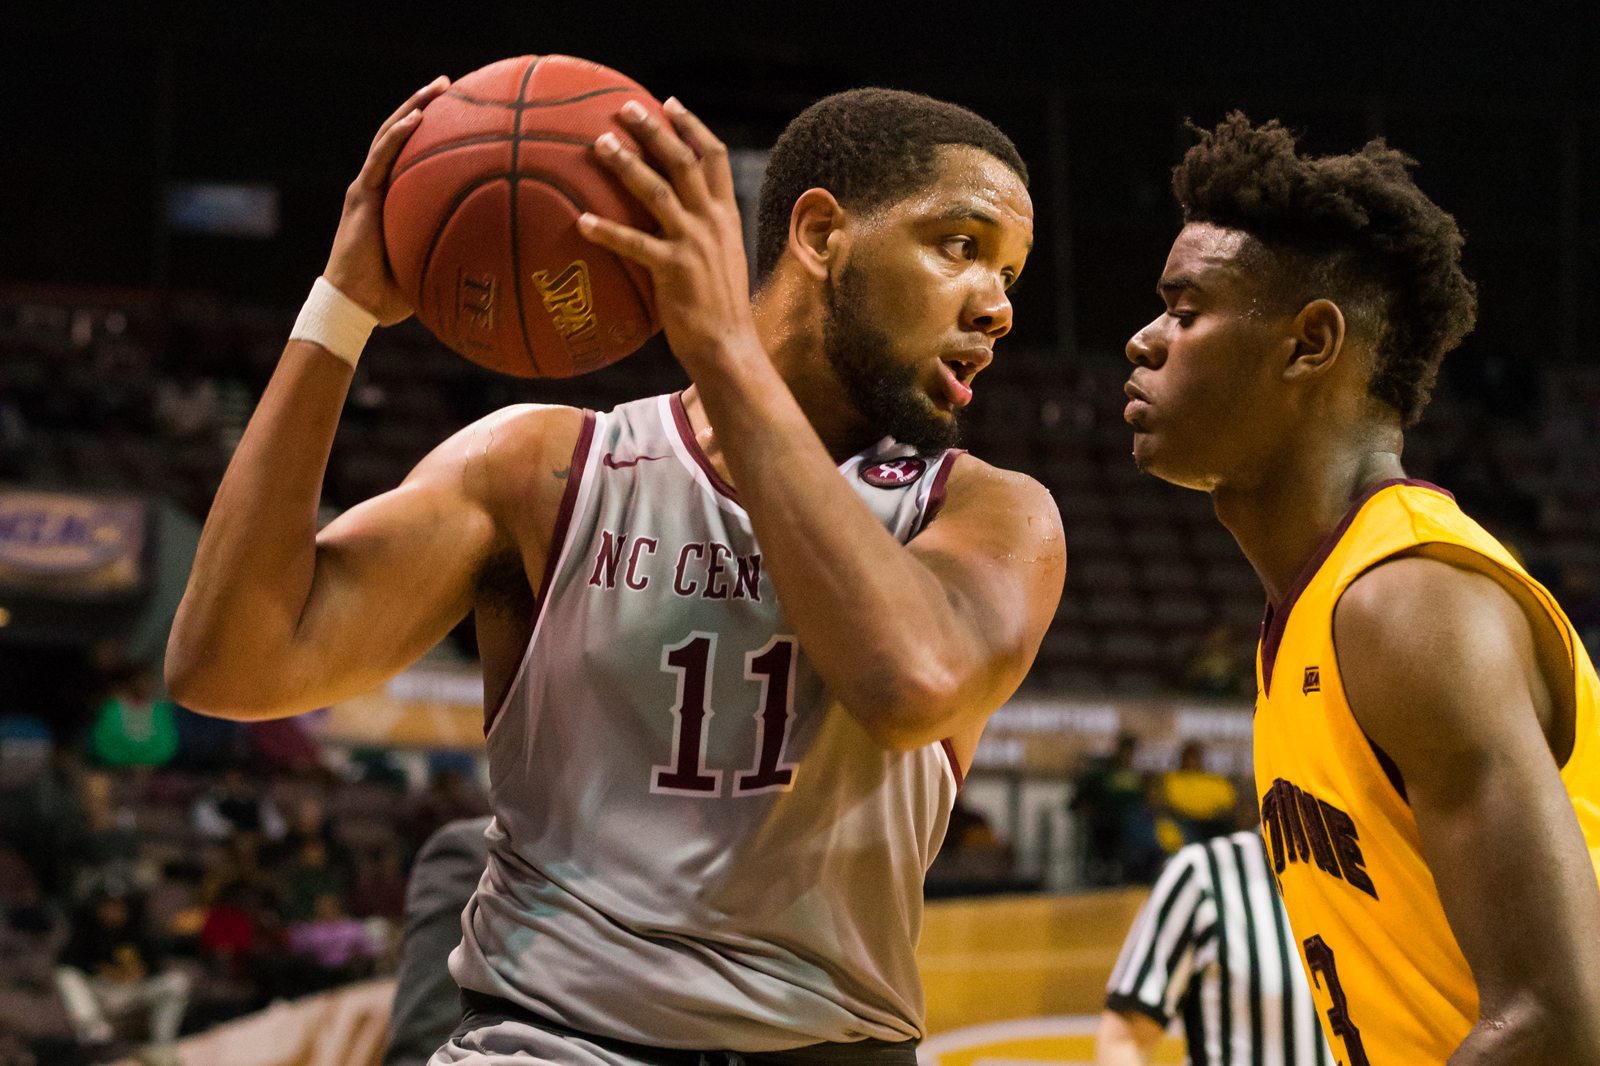 North Carolina Central Eagles guard Patrick Cole (11) stares down Bethune-Cookman Wildcats guard Brandon Tabb (3) during the 2017 MEAC Tournament held at the Scope Arena in Norfolk, VA. North Carolina Central defeated Bethune-Cookman 95-60.